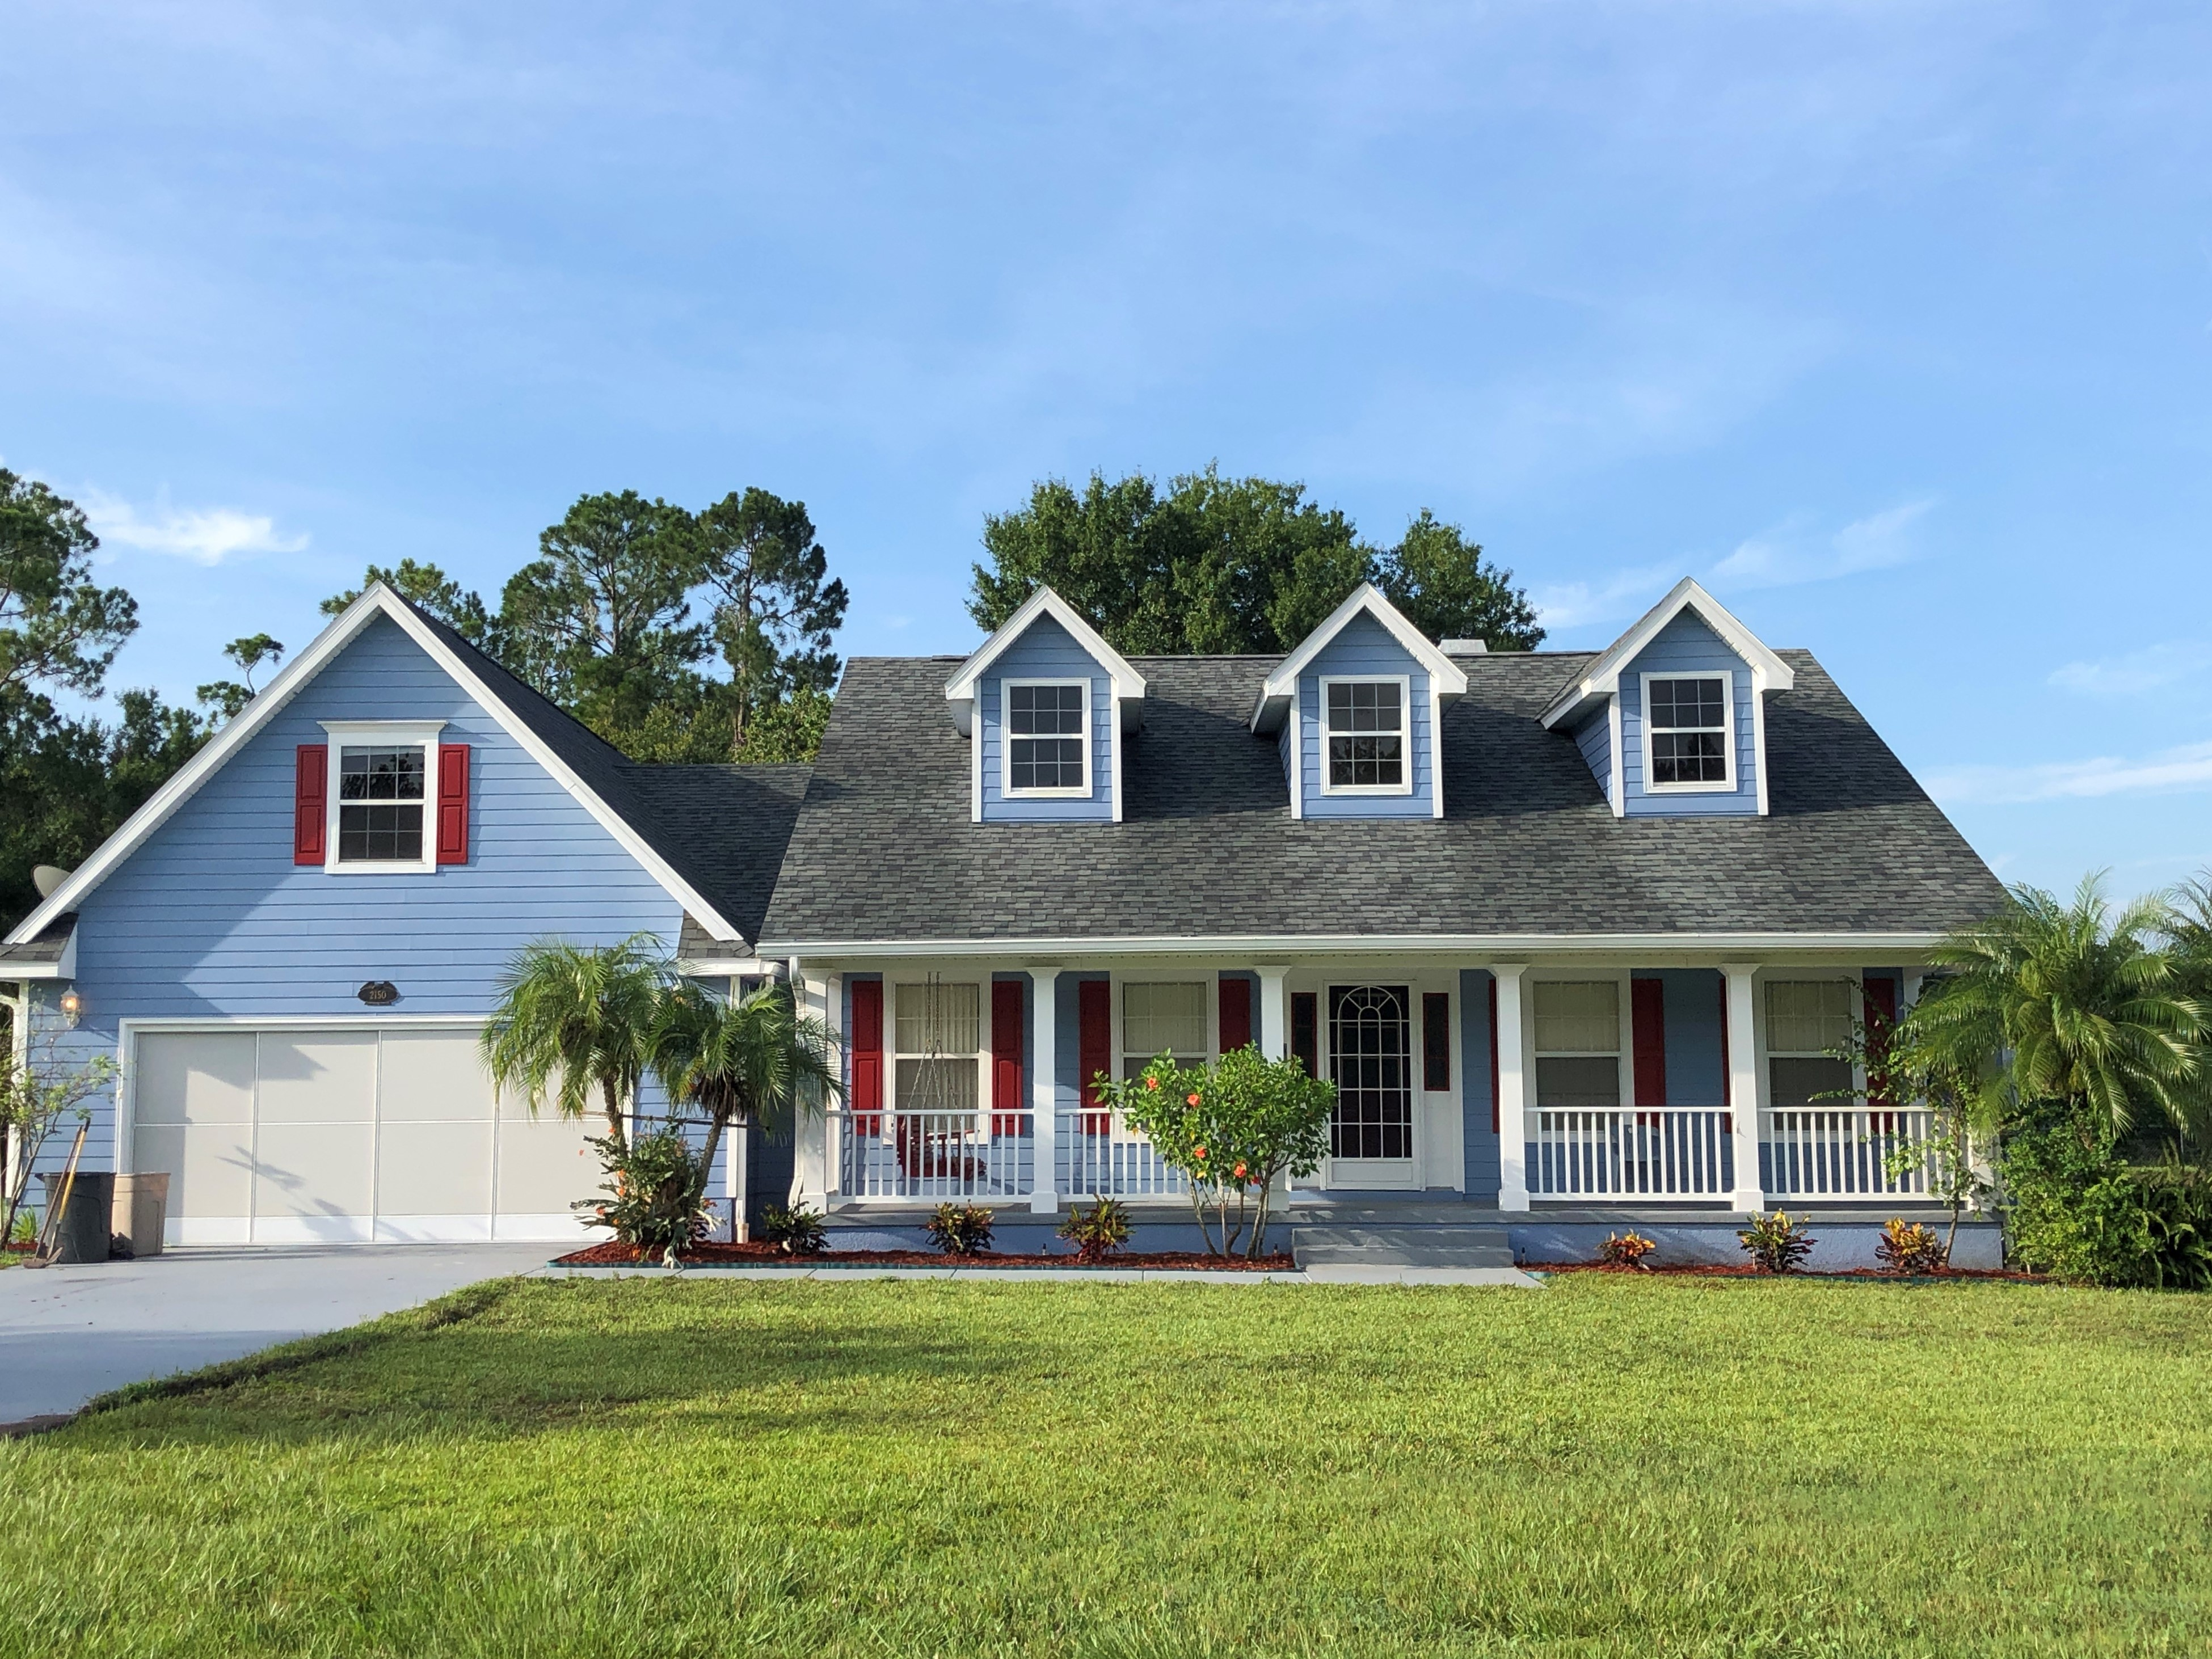 Home for Sale offered by Showplace Realty Inc